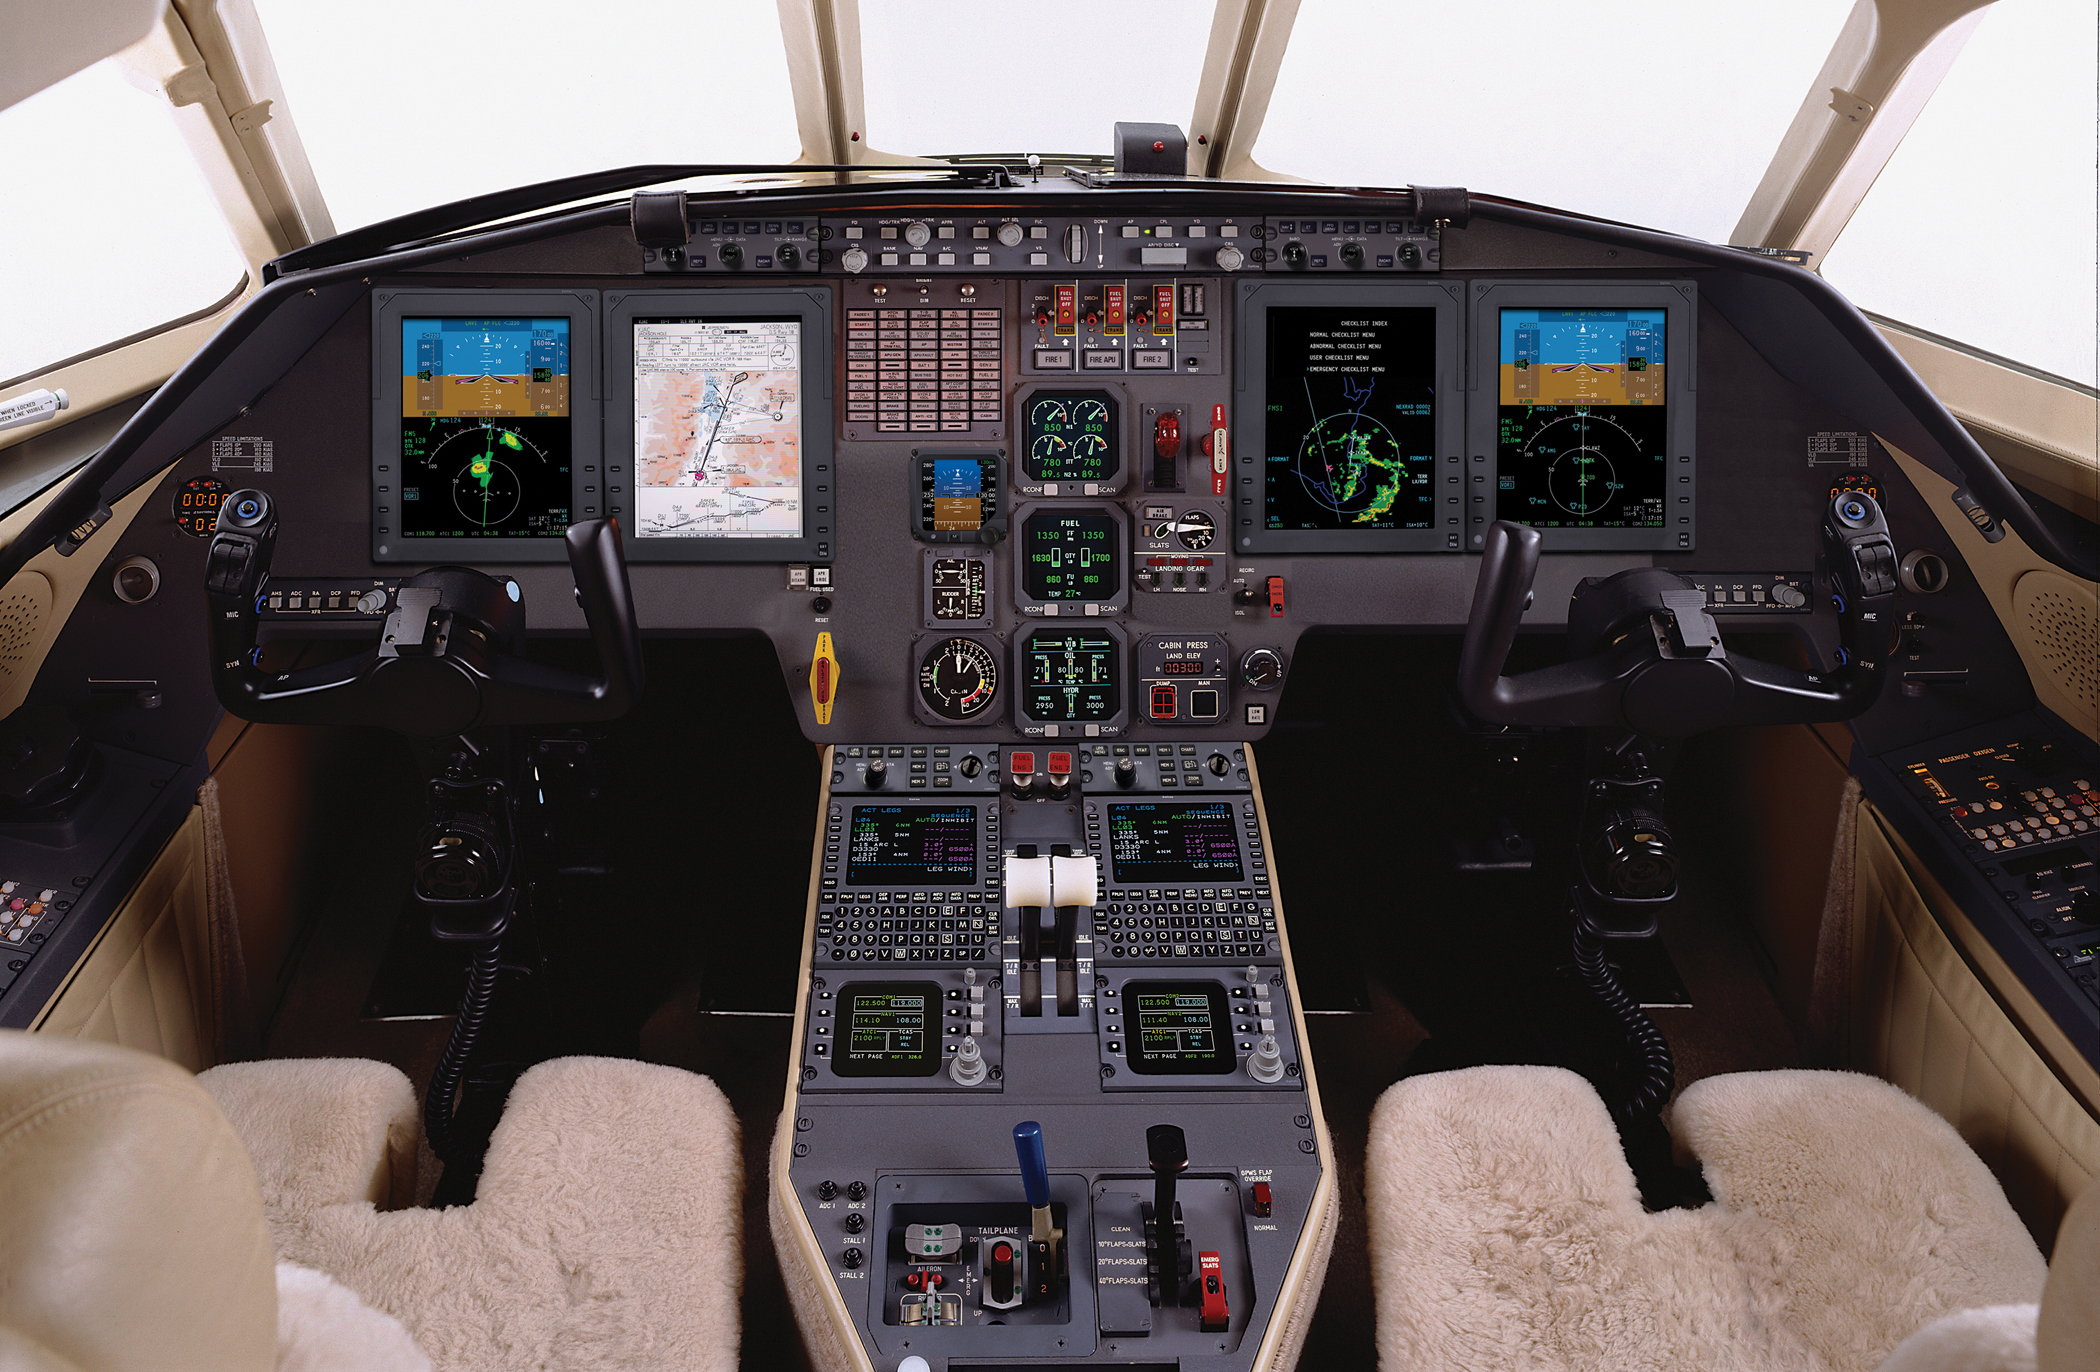 By upgrading to Pro Line 21™, Falcon 2000/2000EX operators gain situational  awareness and extend the life and value of their aircraft.